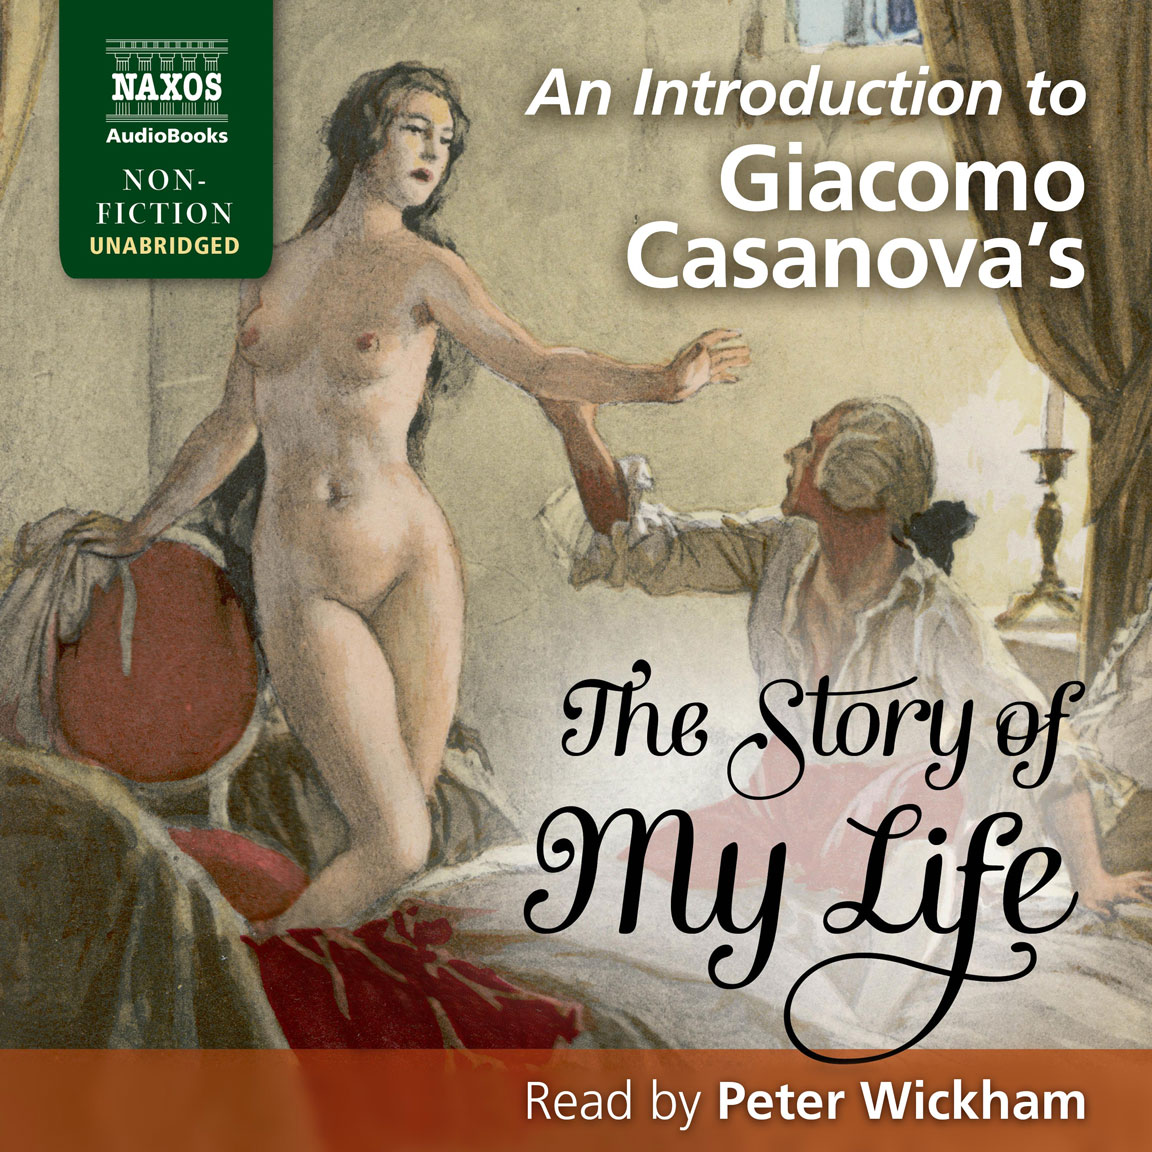 https://www.naxosaudiobooks.com/wp-content/uploads/2018/01/NA0297_Casanova_Podcast_cover.jpg